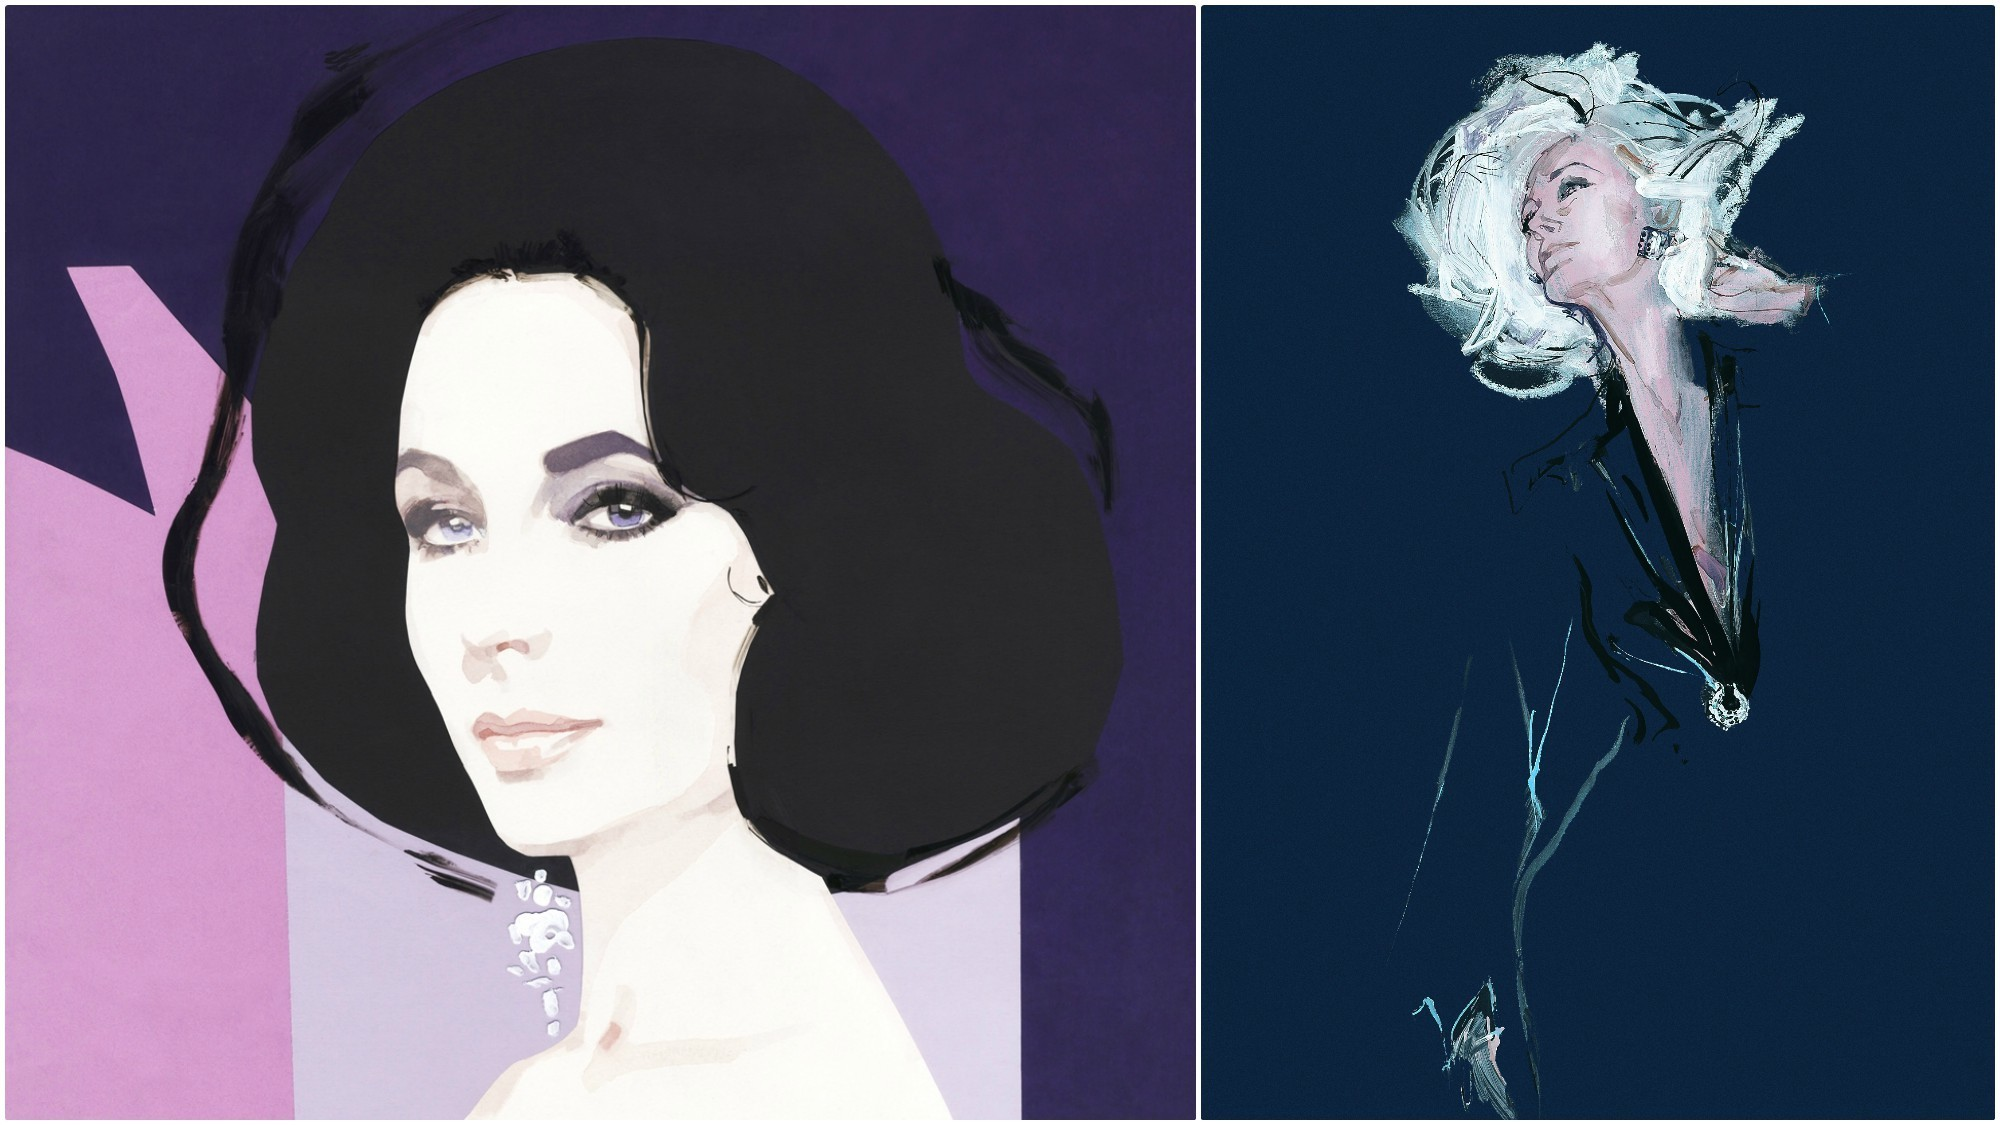 Renderings of Elizabeth Taylor and Carmen Dell'Orefice by fashion illustrator and celebrity portrait artist David Downton.